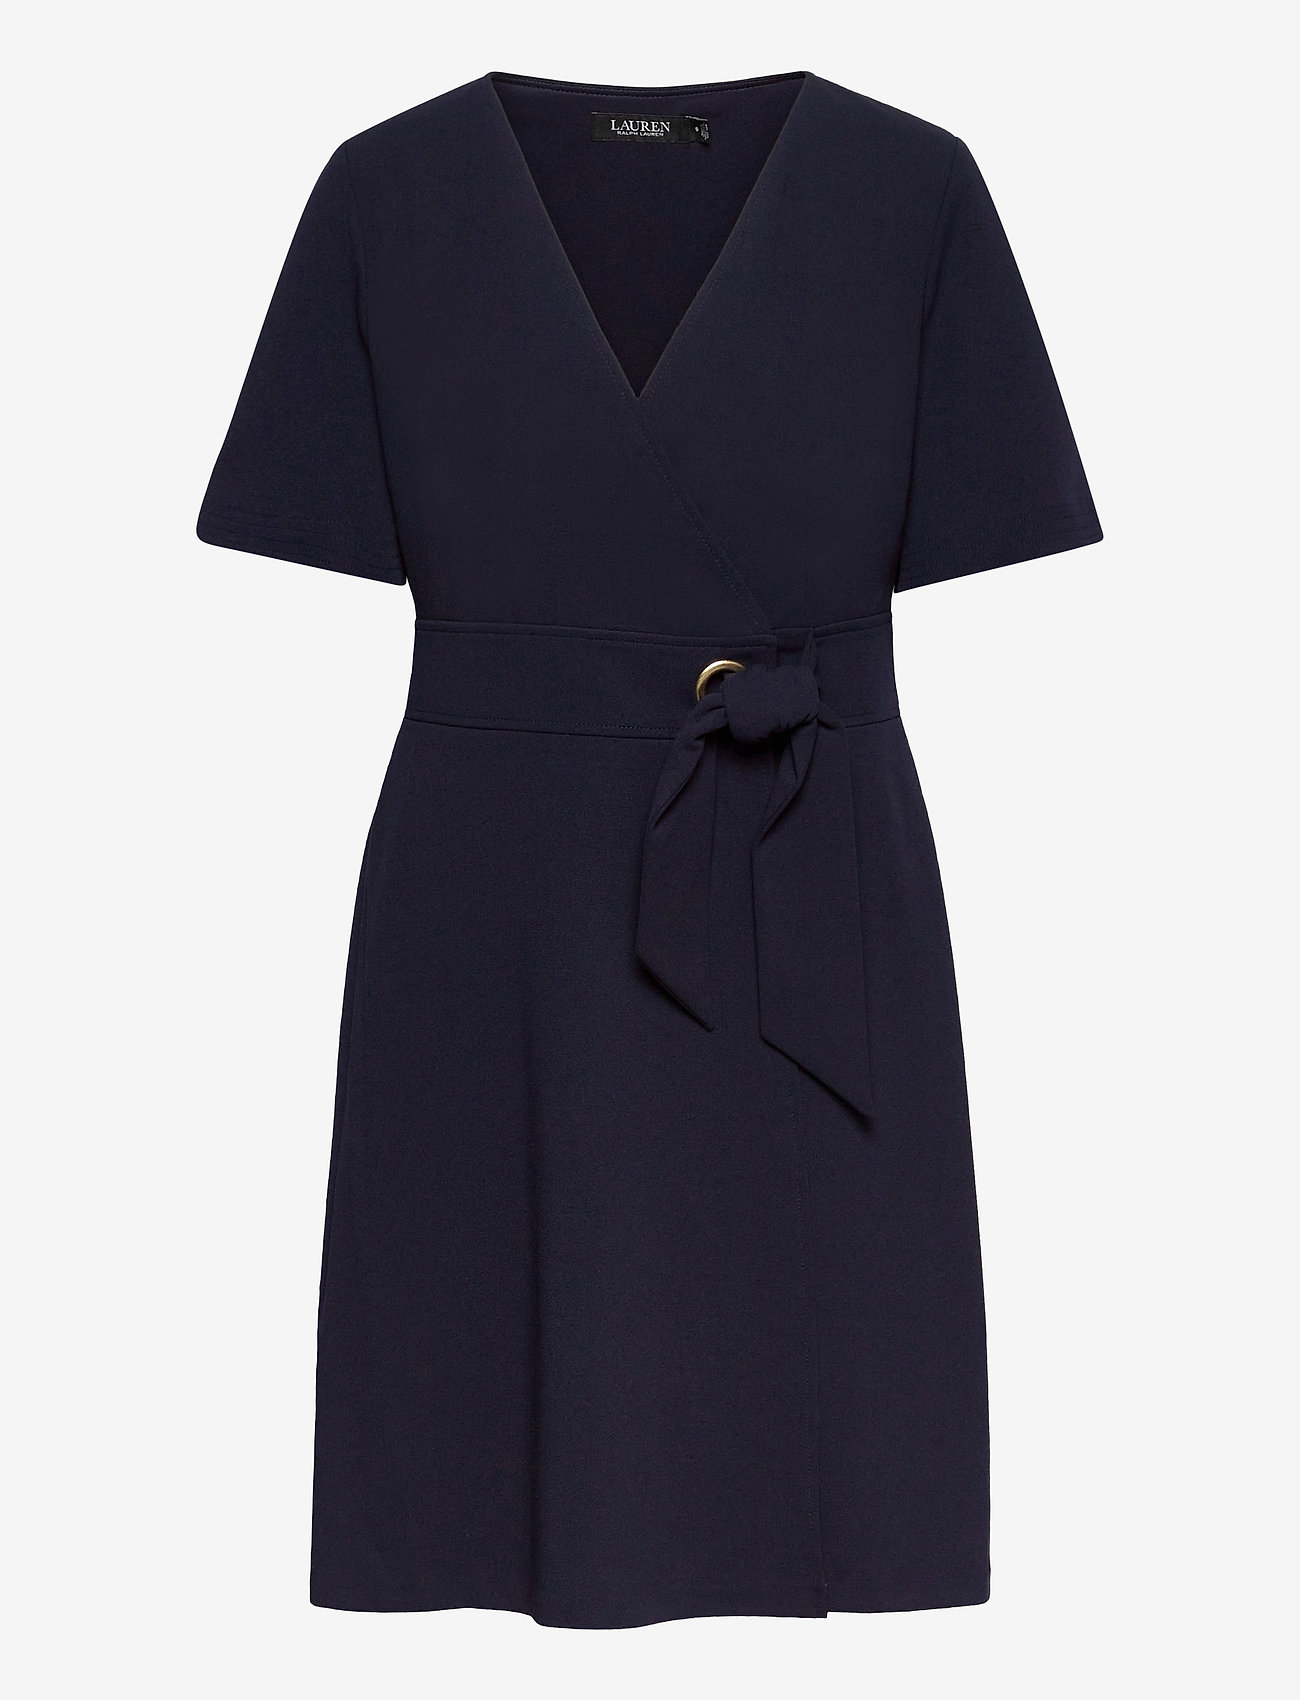 Lauren Ralph Lauren - Crepe Fit-and-Flare Dress - robes de jour - lighthouse navy - 0